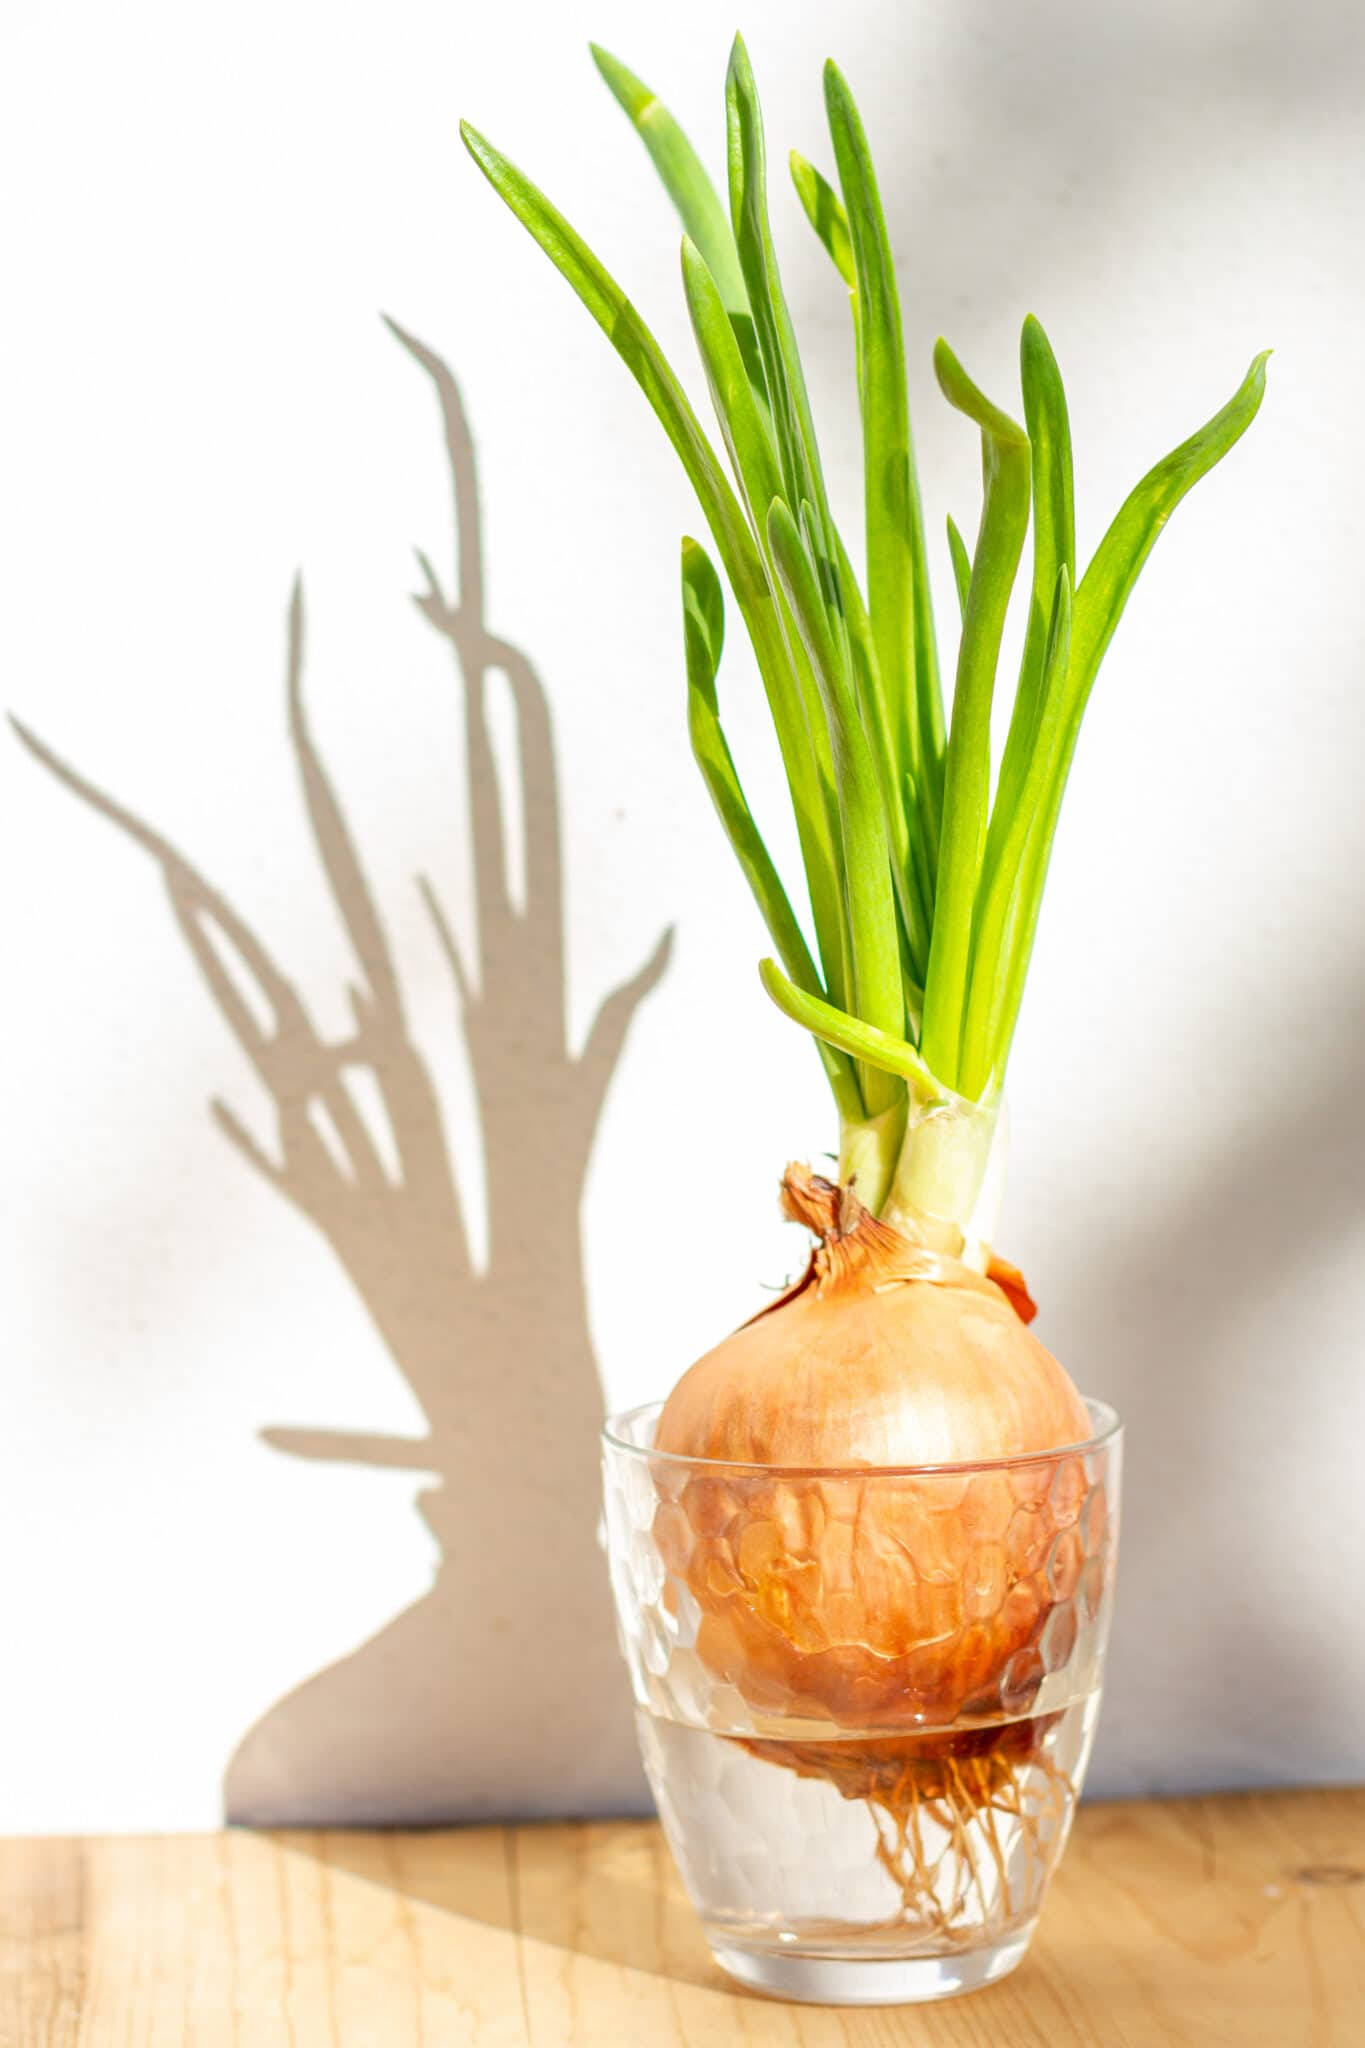 Sprouted green onions in a glass of water.